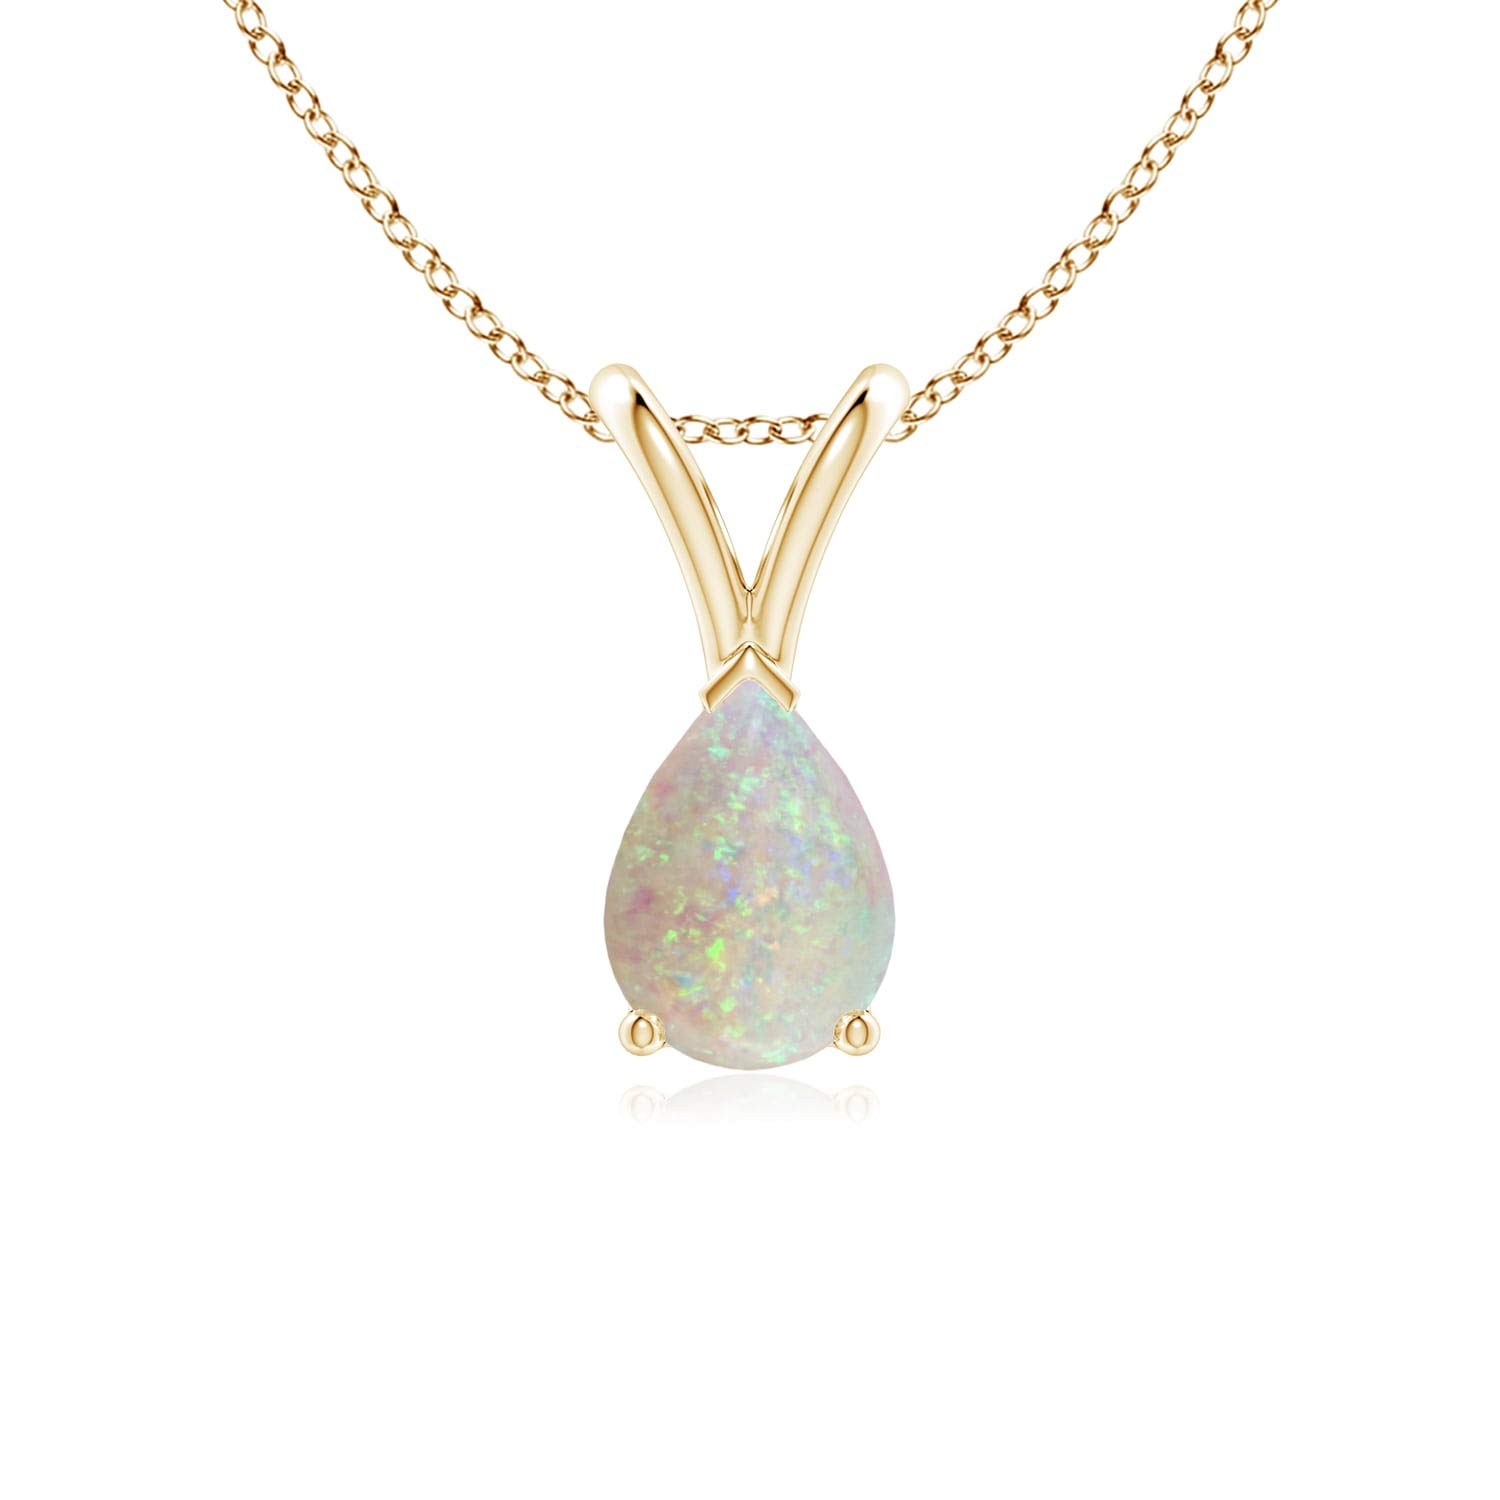 7x5mm Opal V-Bale Pear-Shaped Natural Opal Solitaire Pendant